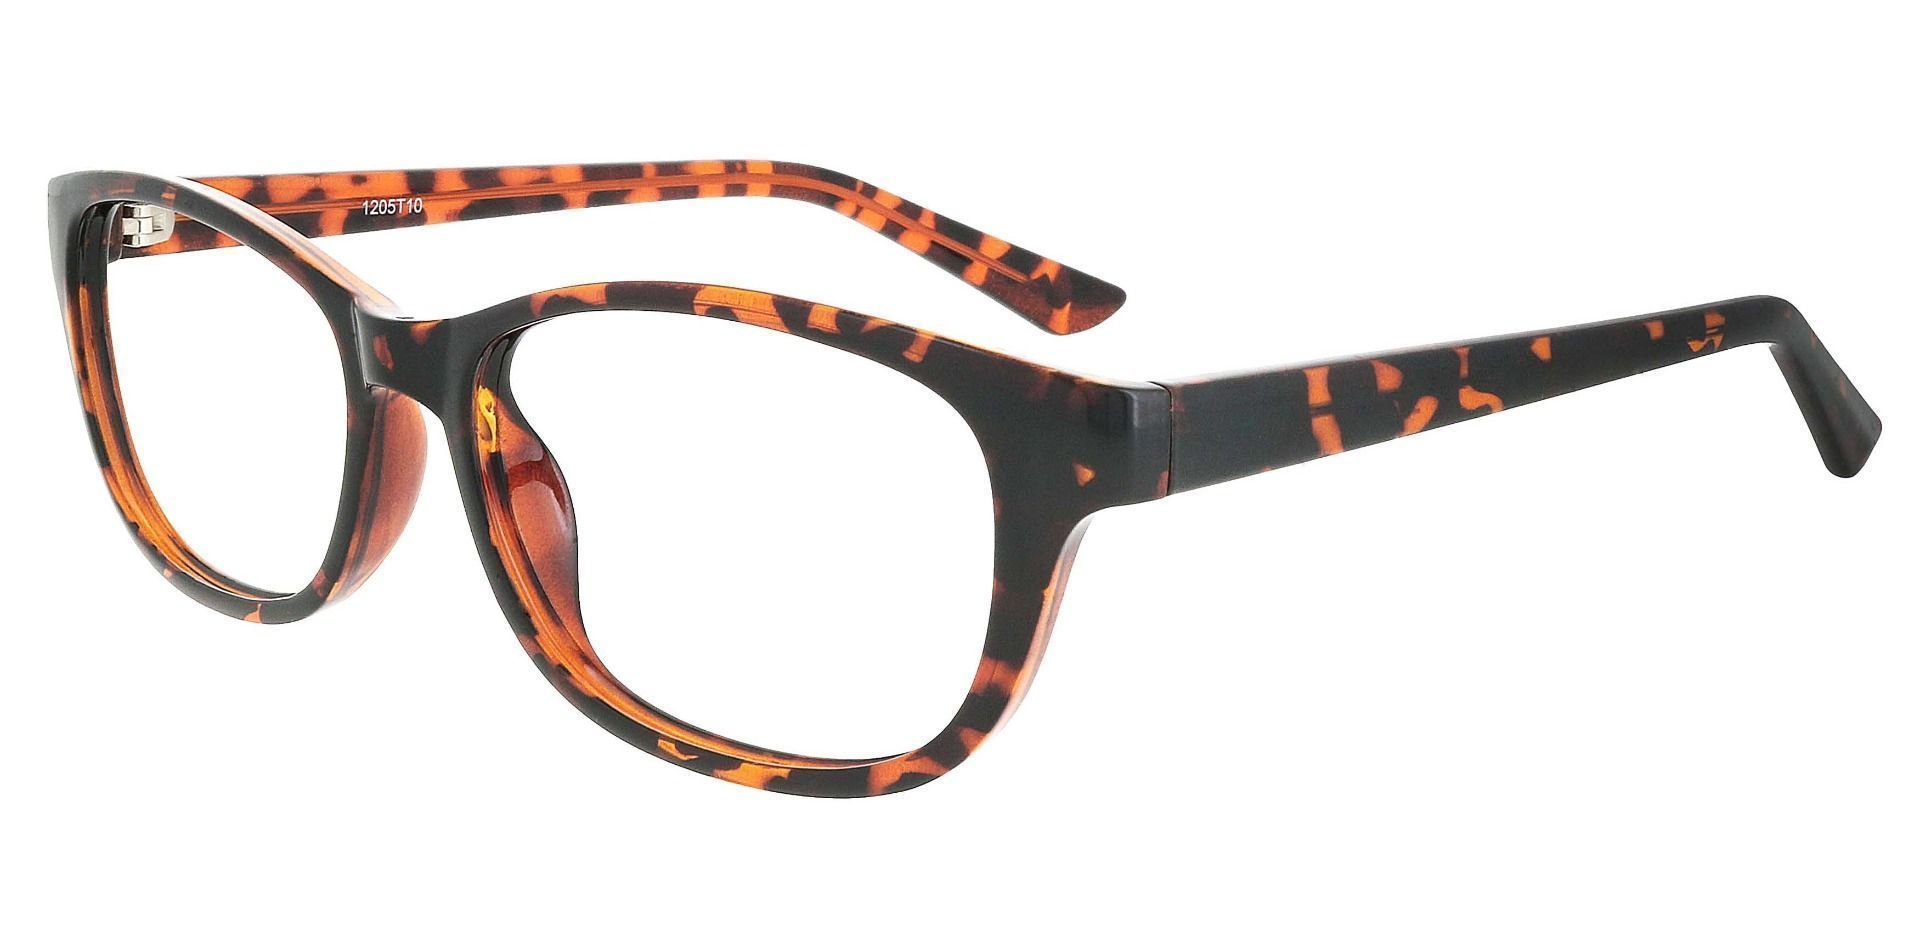 Reyna Classic Square Reading Glasses - Tortoise